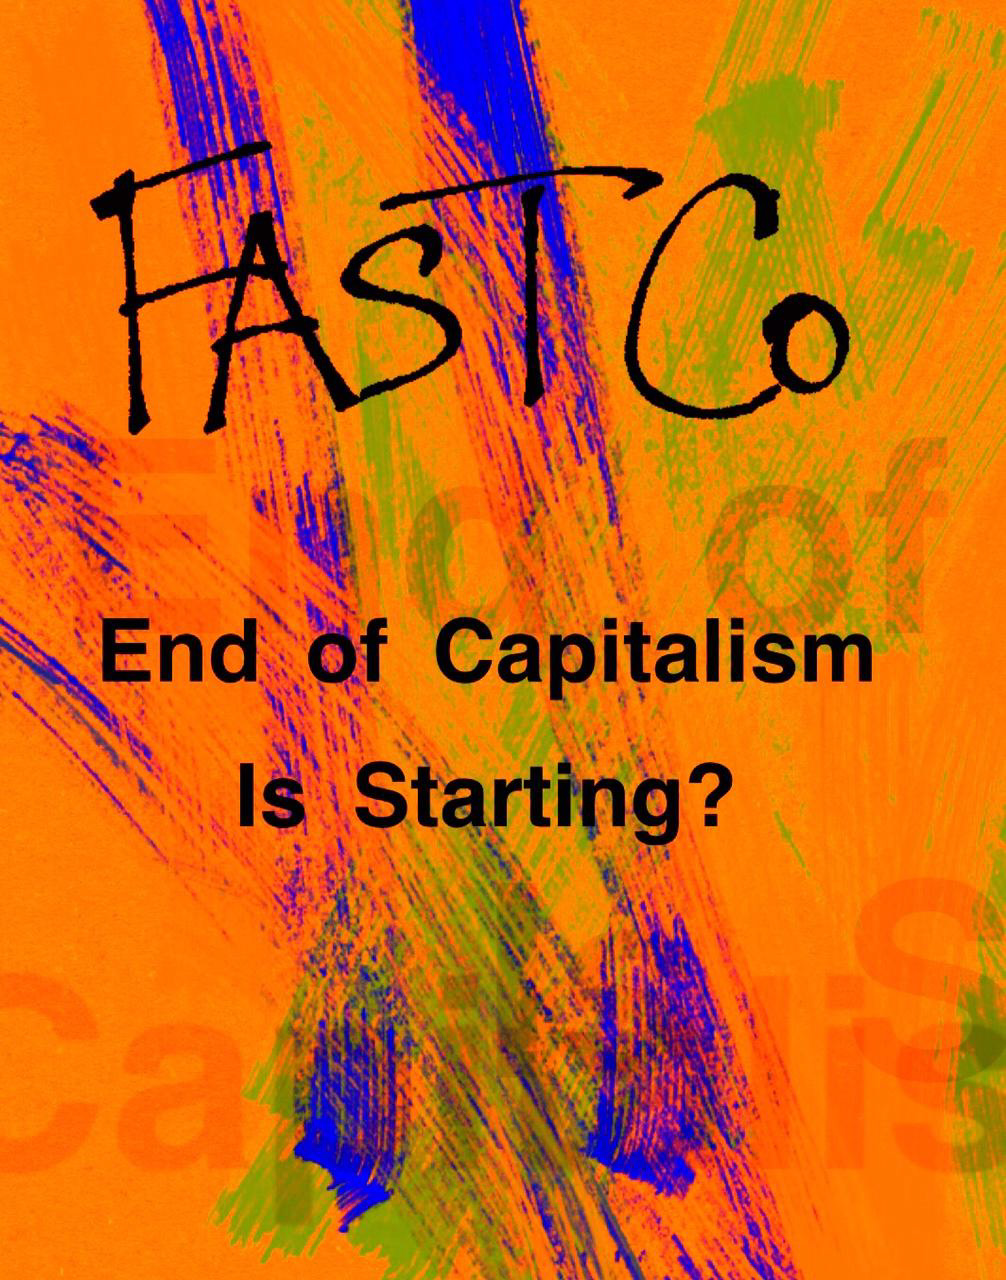 Fast Company - End of Capitalism Starting?